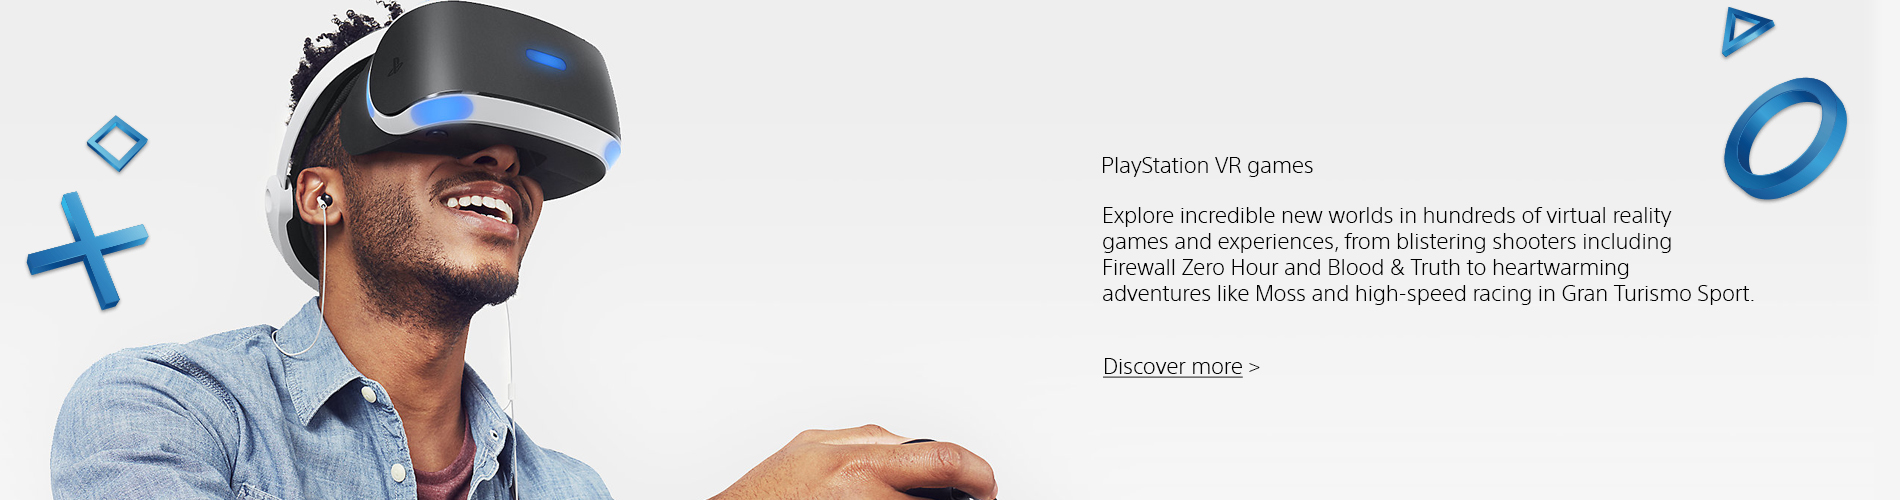 Sony Playstation 4 Landing Page 02  Tile 04